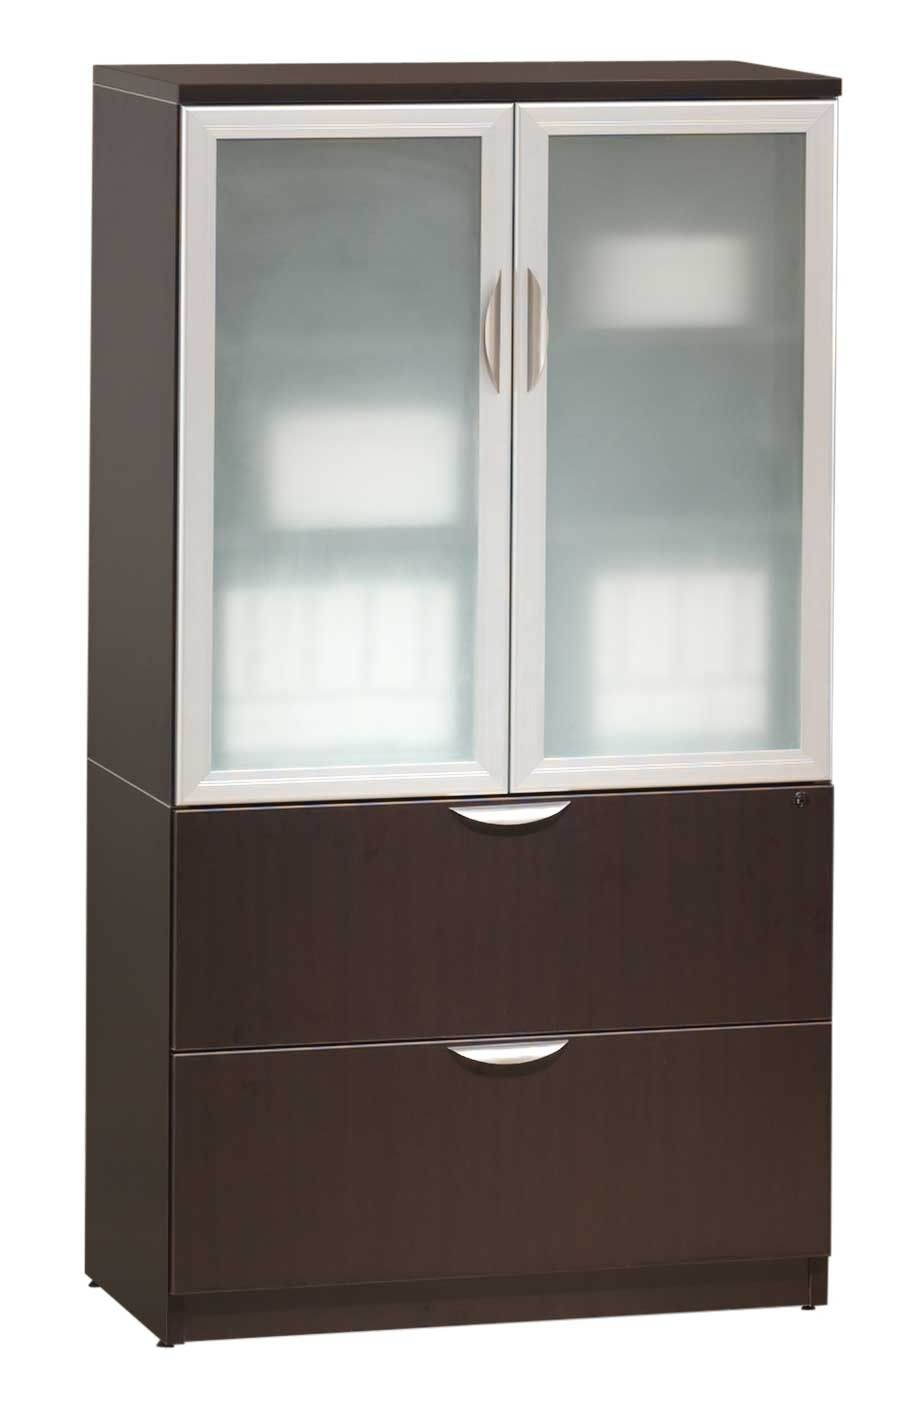 Canvas Of Storage Cabinet With Glass Doors Wood Storage Cabinets Decorative Storage Cabinets Small Storage Cabinet